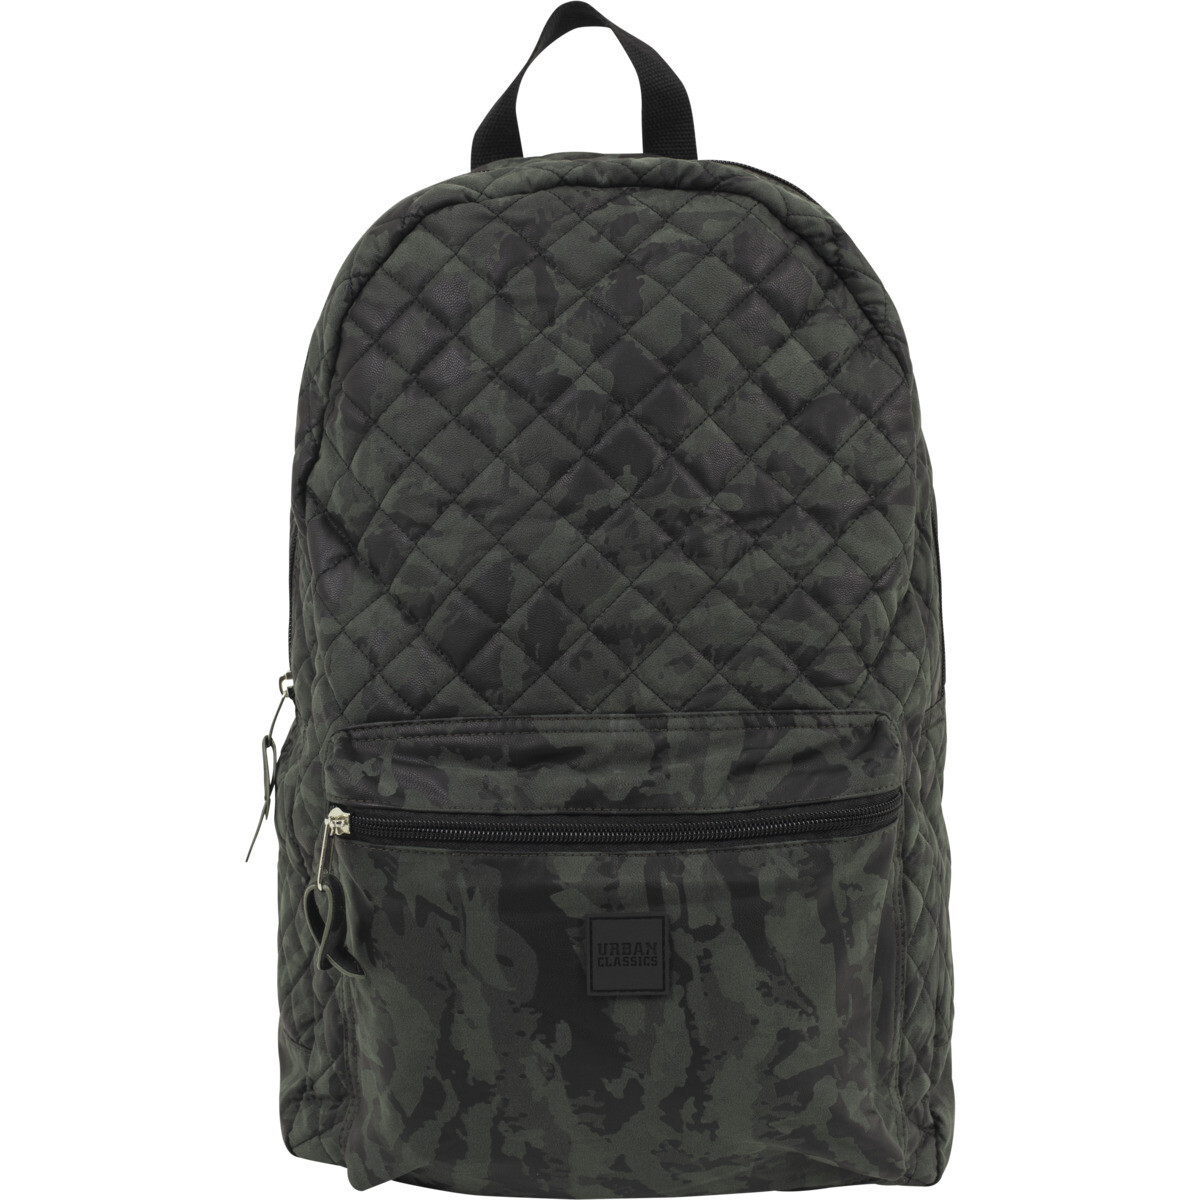 Diamond Quilt Leather Imitation Backpack - Camo